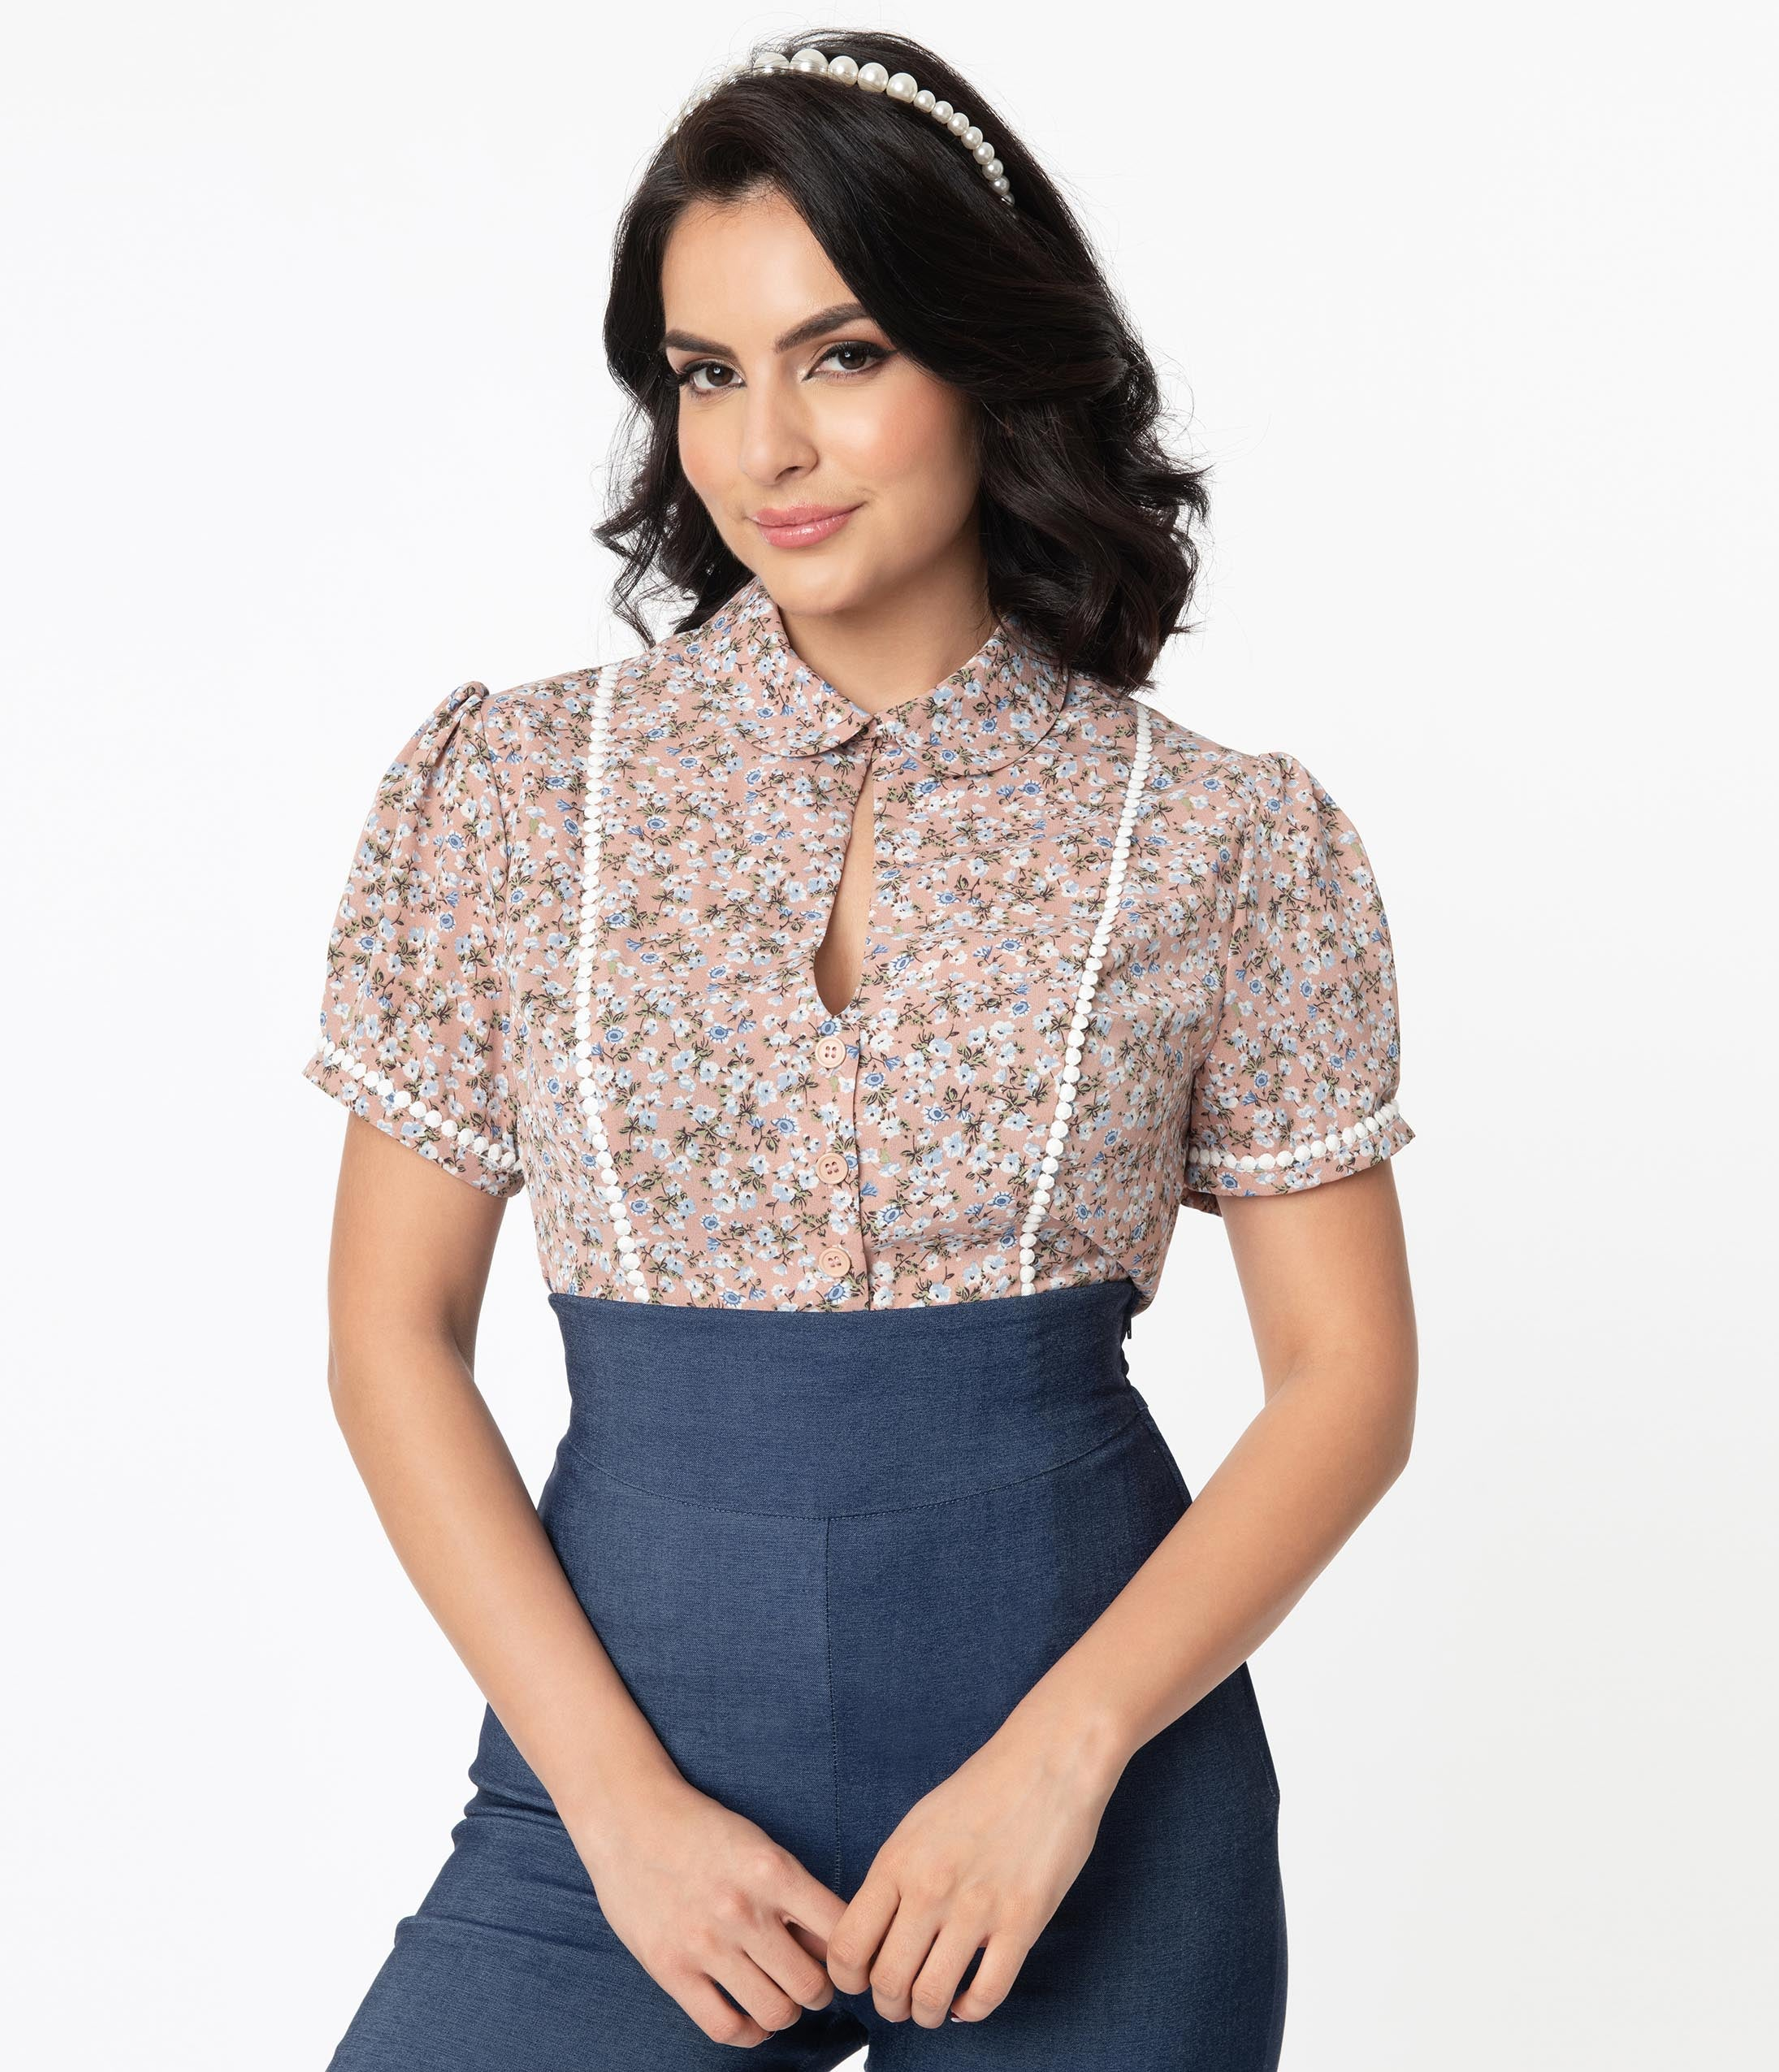 1940s Blouses and Tops Unique Vintage Dusty Pink  Blue Ditsy Floral Pinky Top $54.00 AT vintagedancer.com